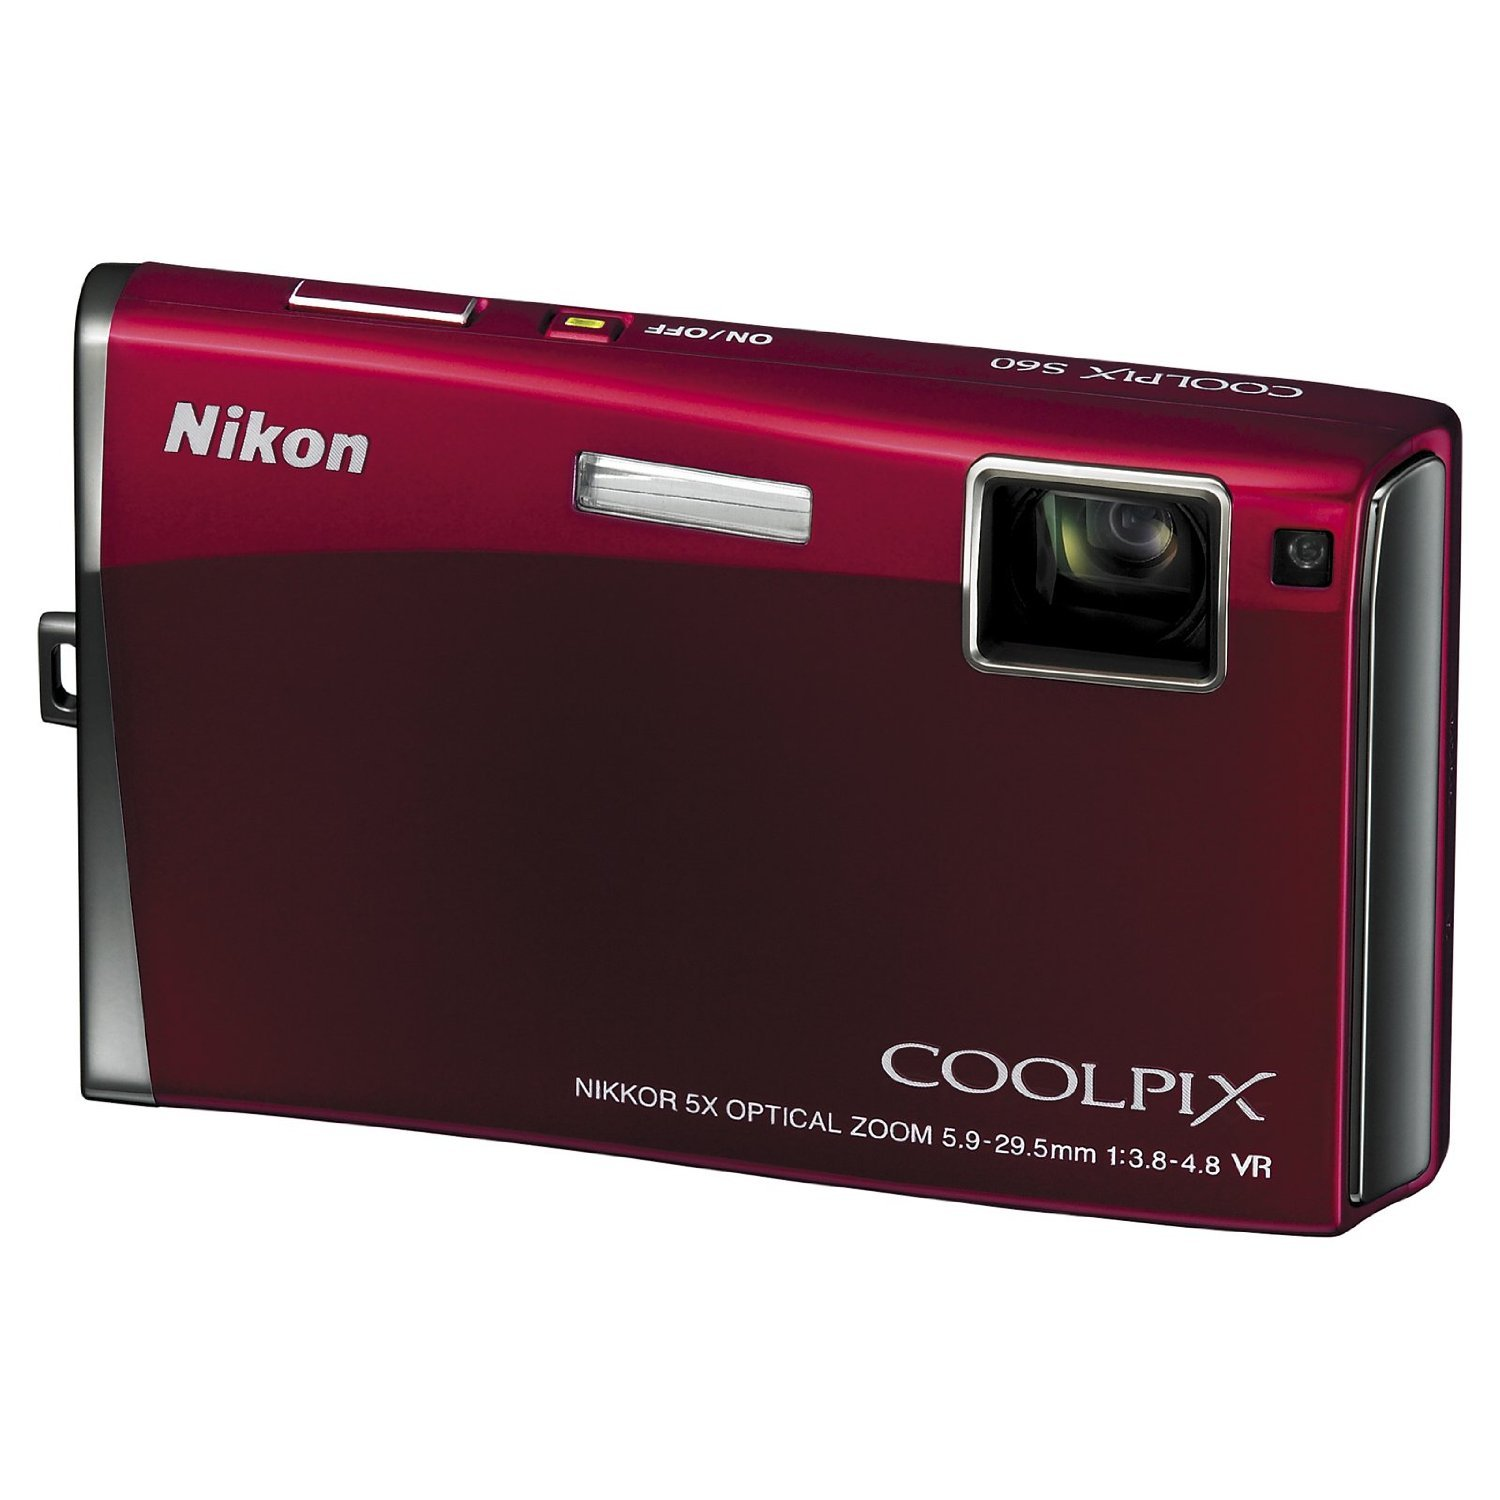 Nikon Coolpix S60 10MP Digital Camera with 5x Optical Vibration Reduction (VR) Zoom (Crimson Red)